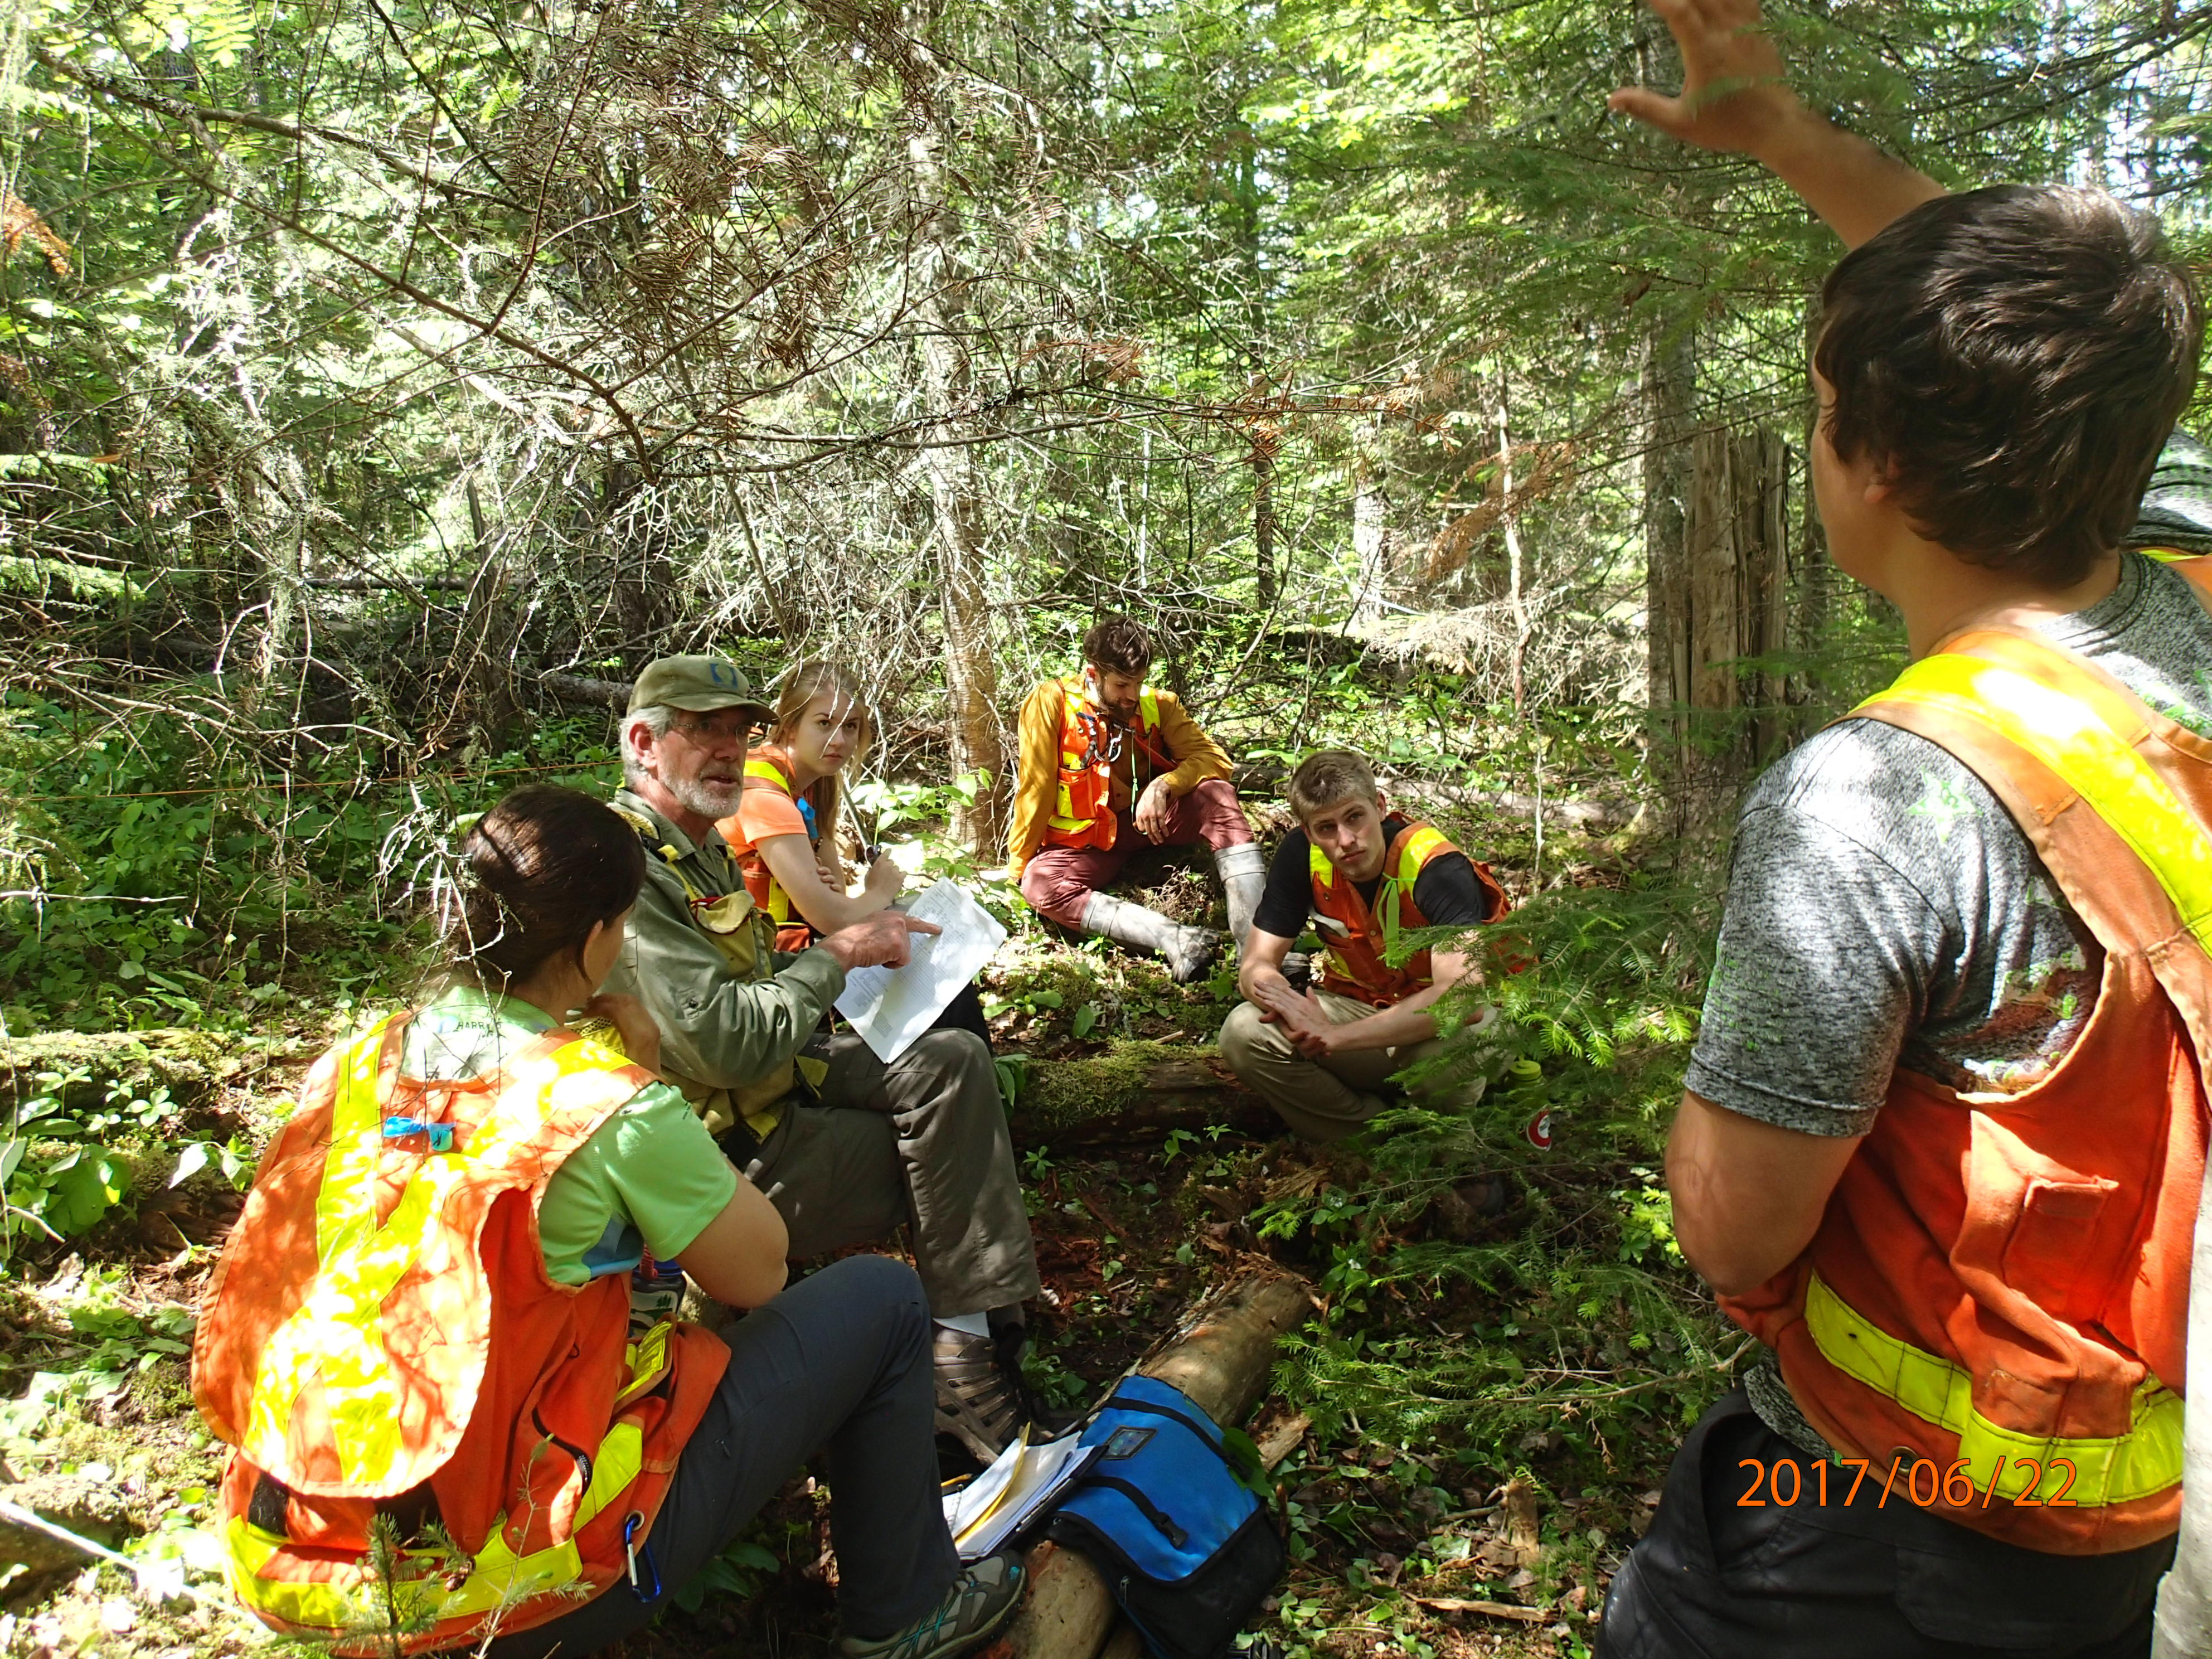 Quetico Foundation Student Summer Research Team familiarizes with vegetation monitoring, with Gerry Racey, before getting further insight into studies of wildfires and planned fire management on a summer-long wilderness canoe excursion. Learn about the work that the Student Summer Research Program does and learn more about the Quetico Foundation here: http://queticofoundation.org/what-we-do/programs/ Photo credit: Brian Jackson, Quetico Provincial Park Biologist